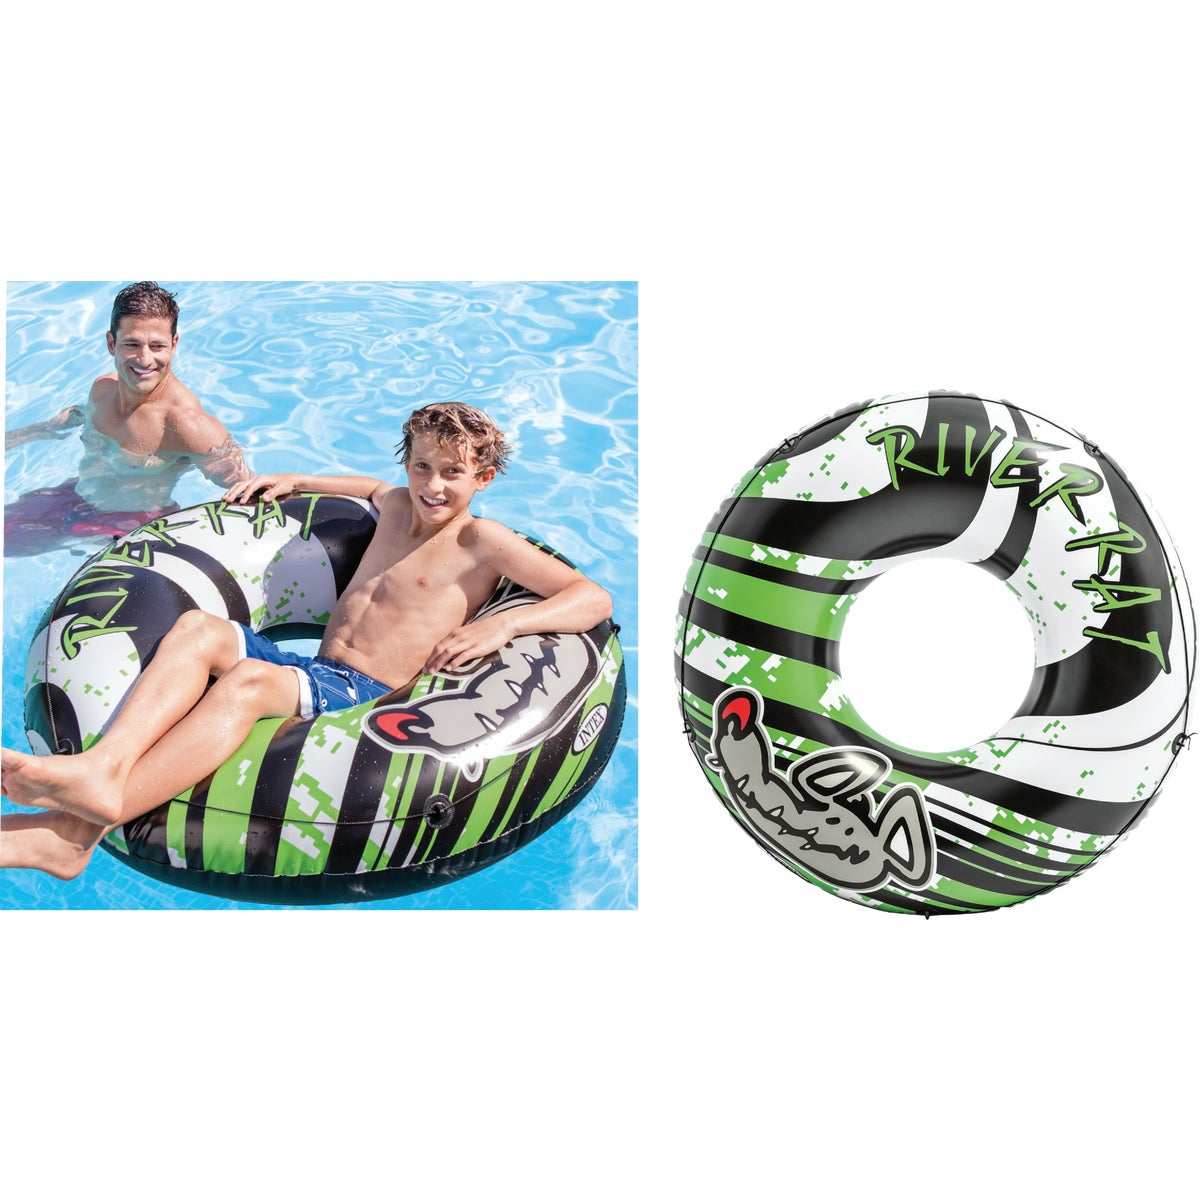 RIVER RAT TUBE - 68209EP by Intex Recreation